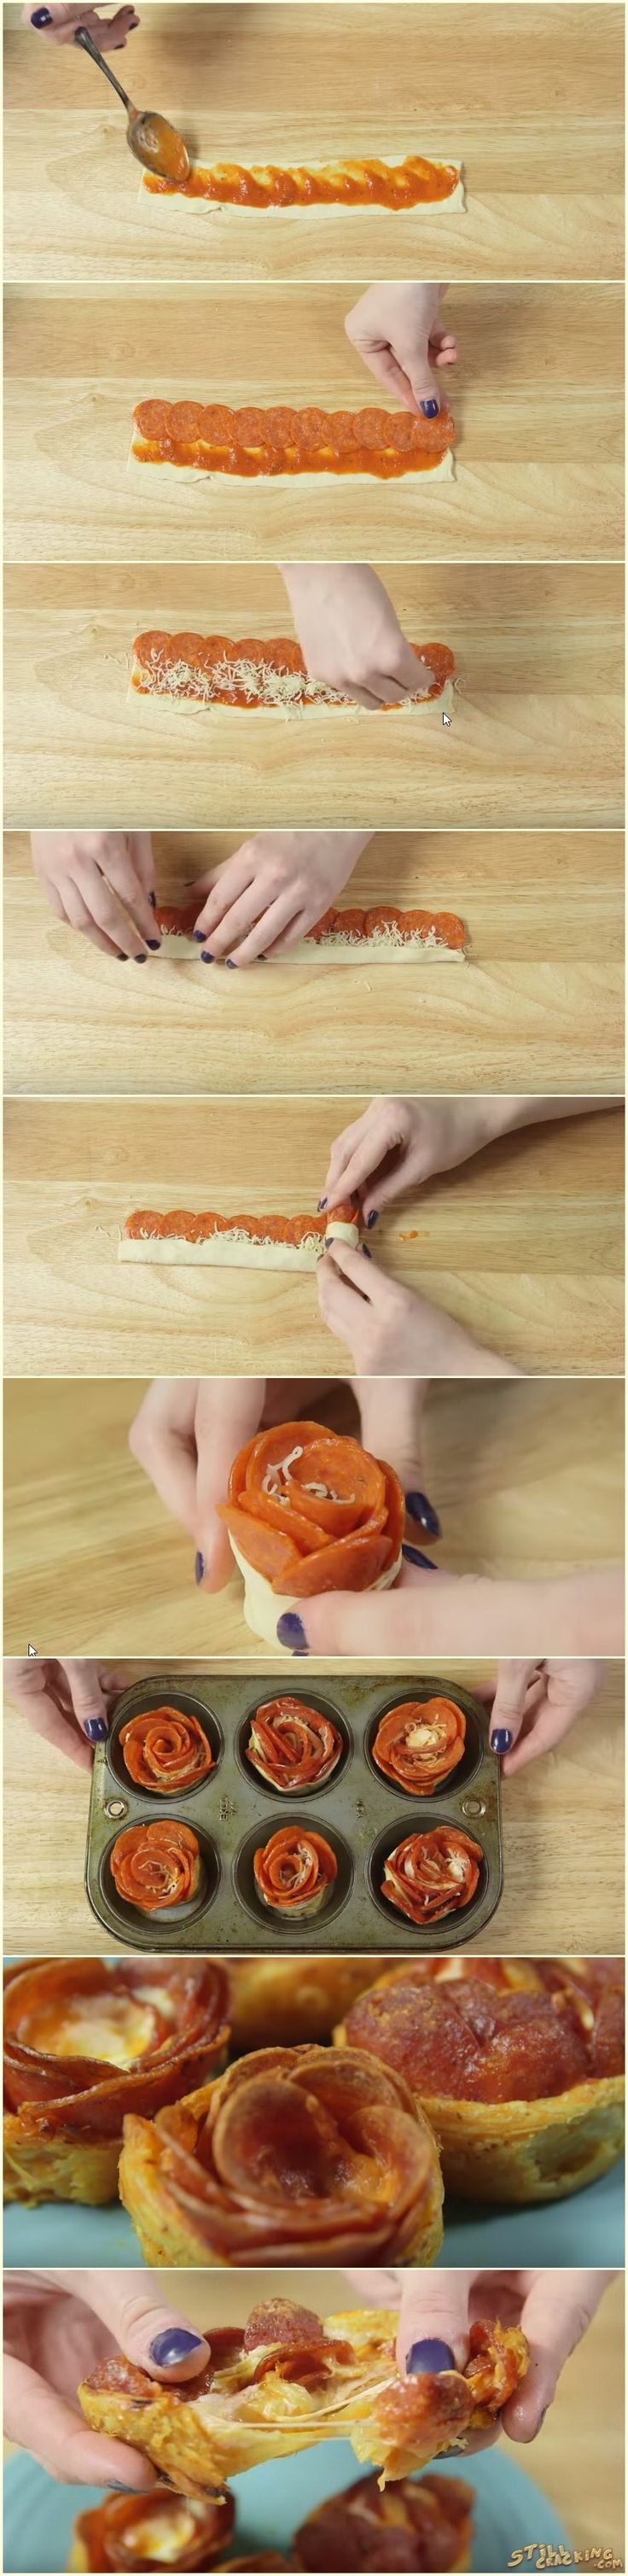 Ingredients: Pepperoni slices (about 8 per rose) Pizza sauce Pizza dough (we used Pillsbury pizza dough) Shredded mozzarella cheese Roll out your dough and cut into strips about 8 inches long and 1.5 inches wide. Try to get the dough as thin as possible. Cover lightly in pizza sauce. Place pepperoni at one end, so …